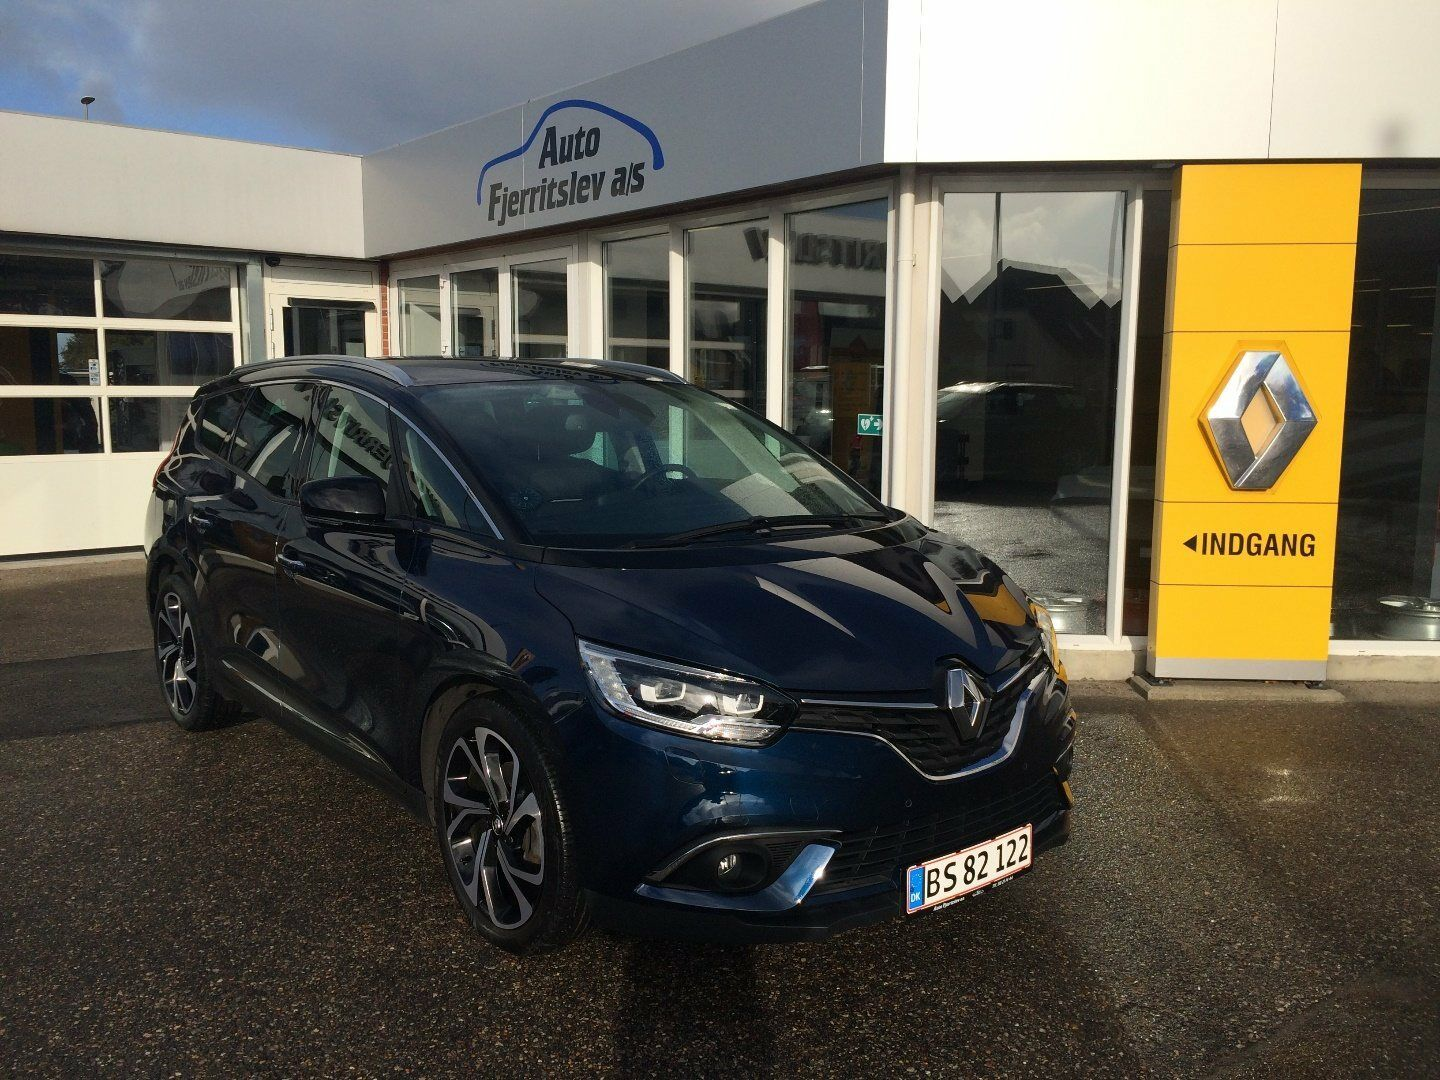 Renault Grand Scenic IV 1,6 dCi 160 Bose EDC 5d - 354.400 kr.